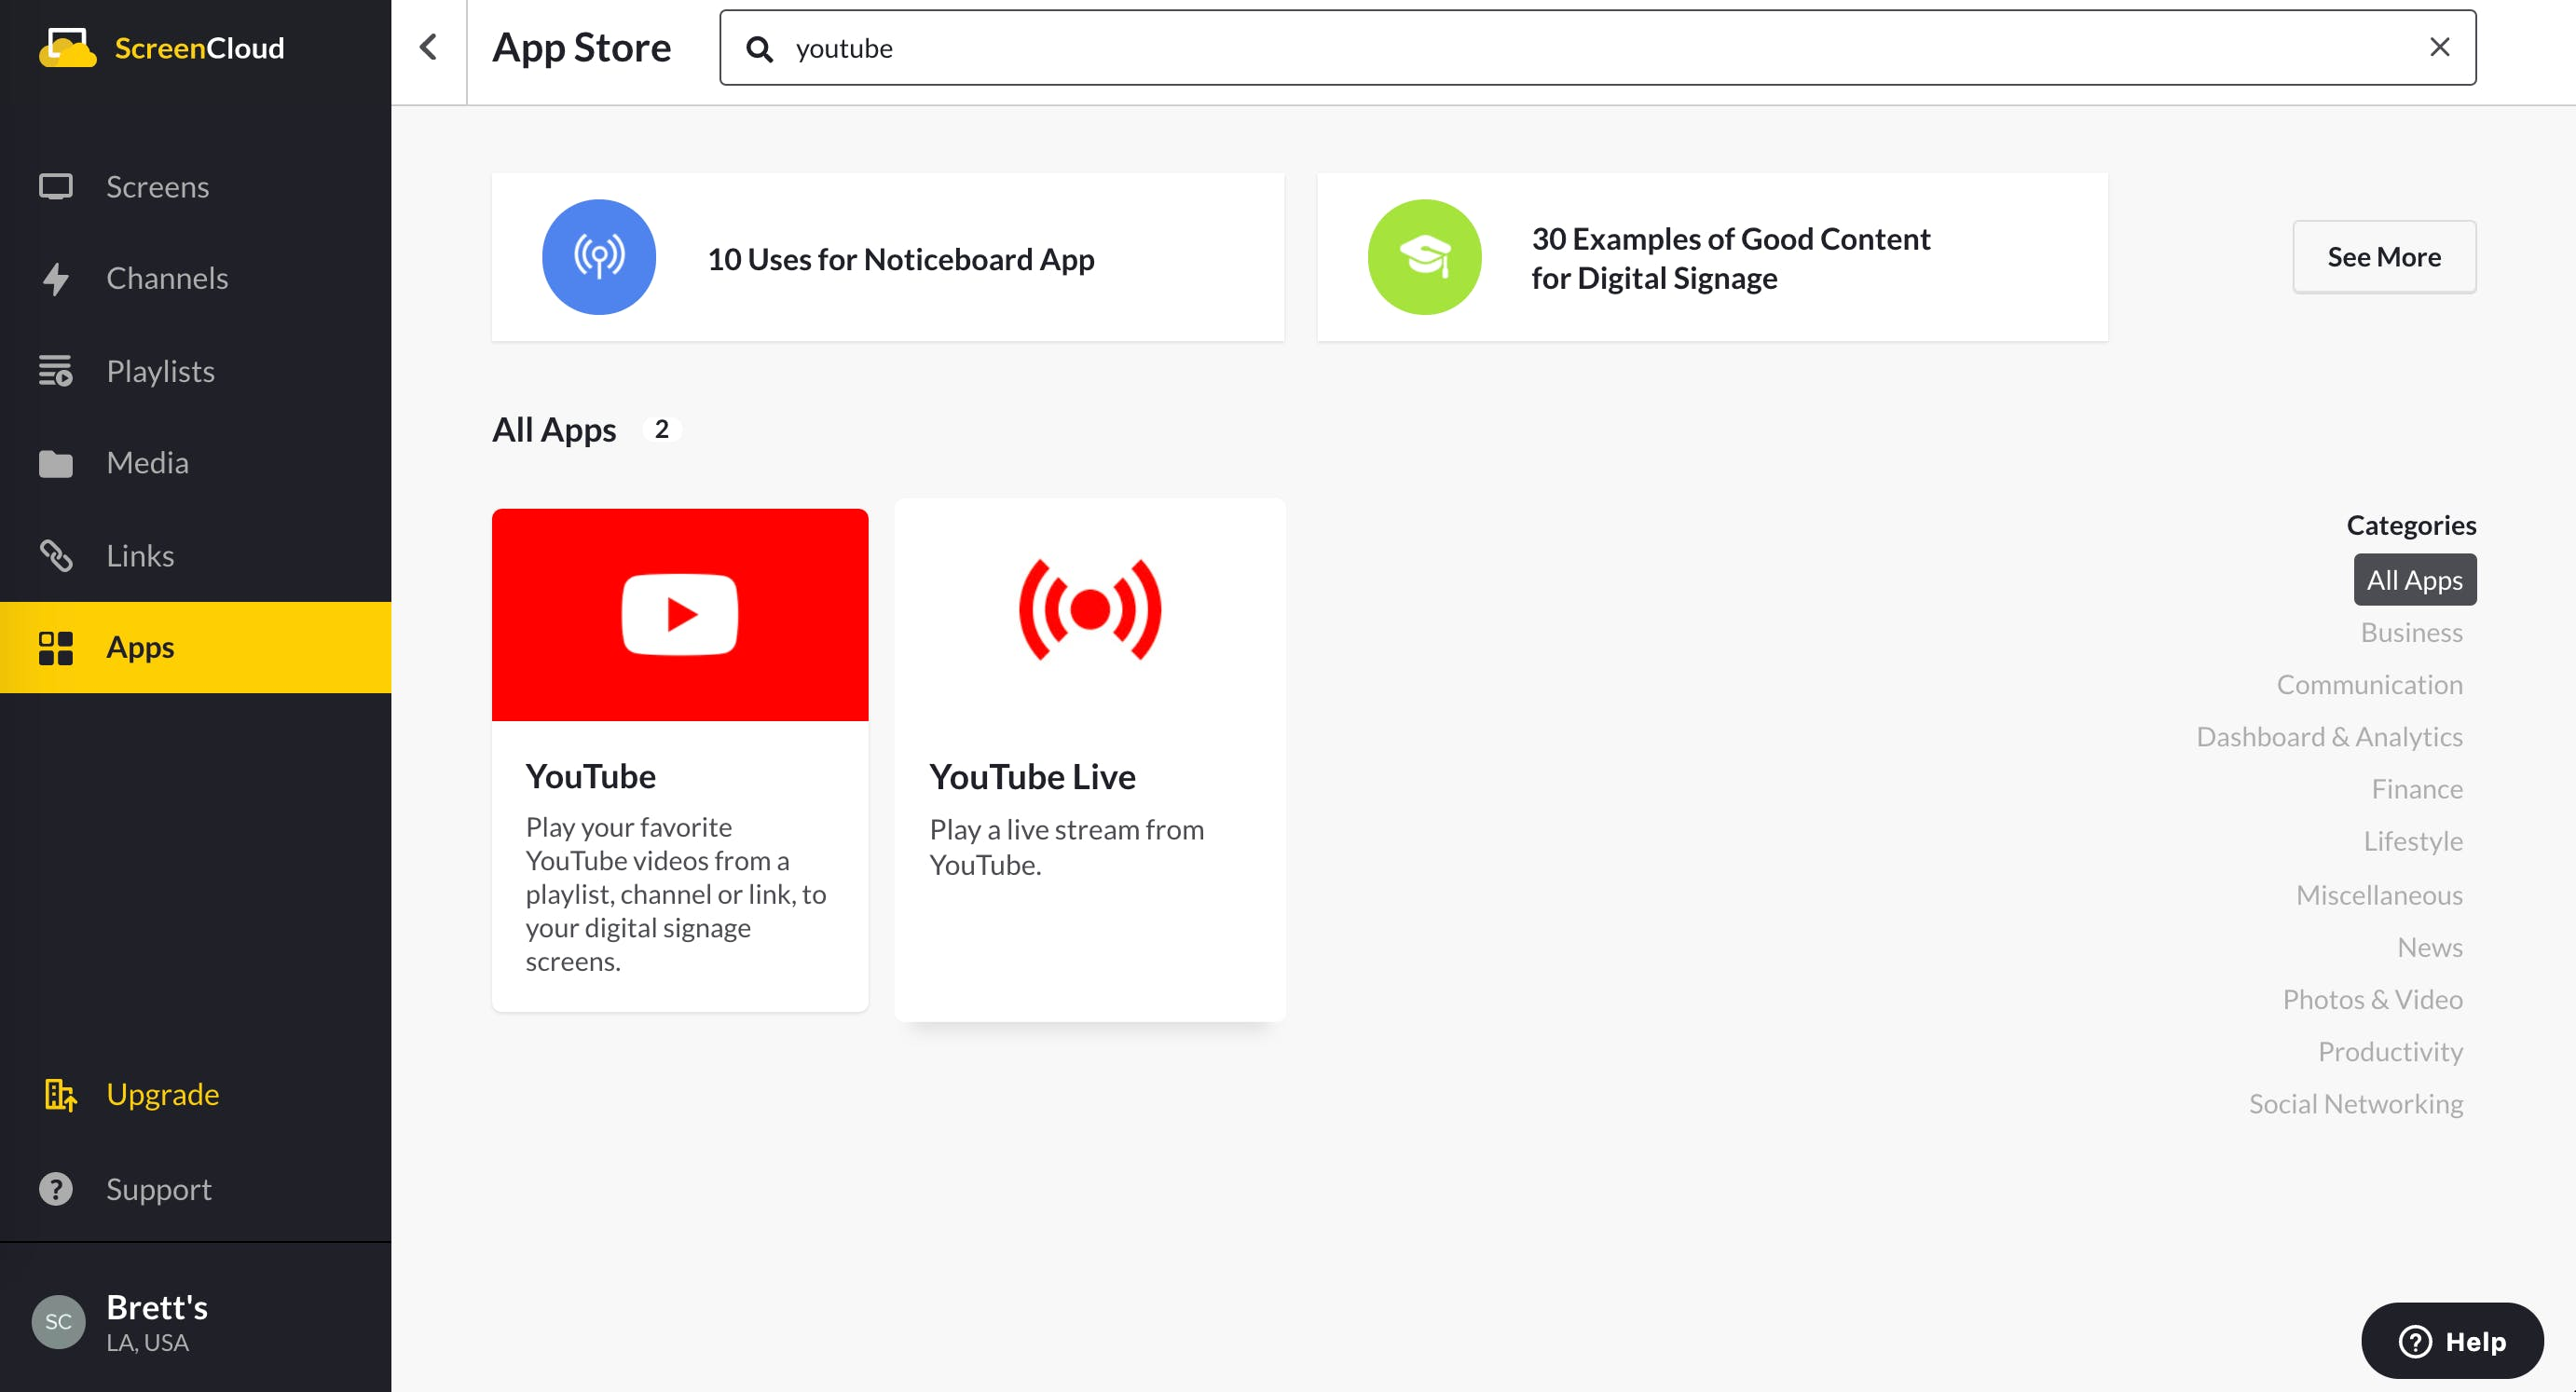 YouTube Live App Guide - App Store 5.13.2020.png